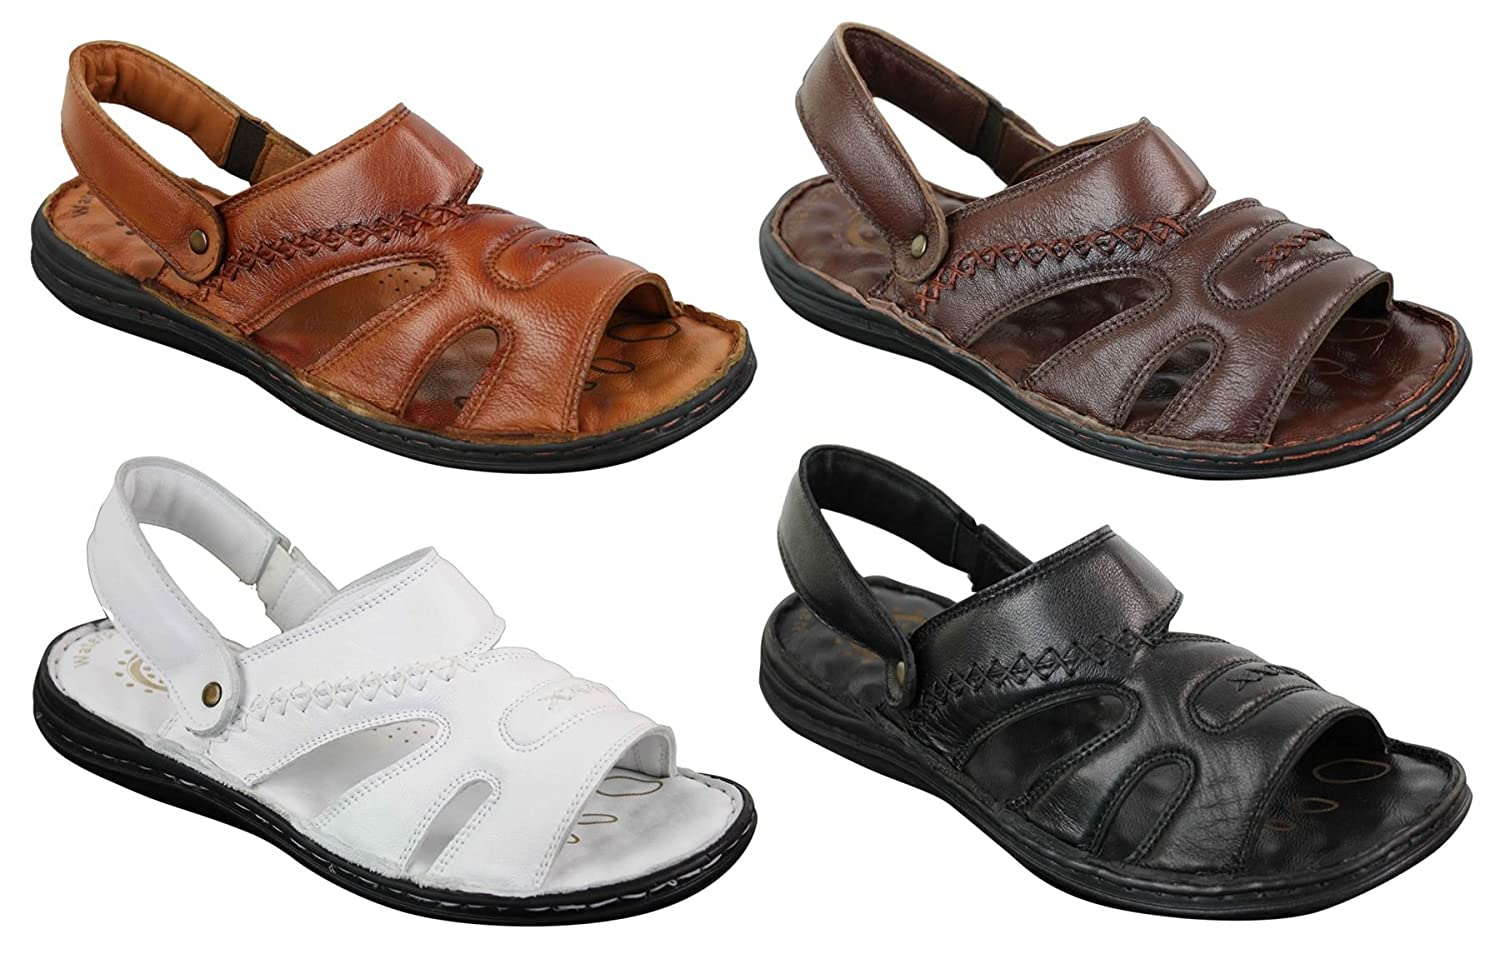 Wyndham Mens Strap Real Leather Walking Mules Slip On Sandals Premium Comfort Waterproof